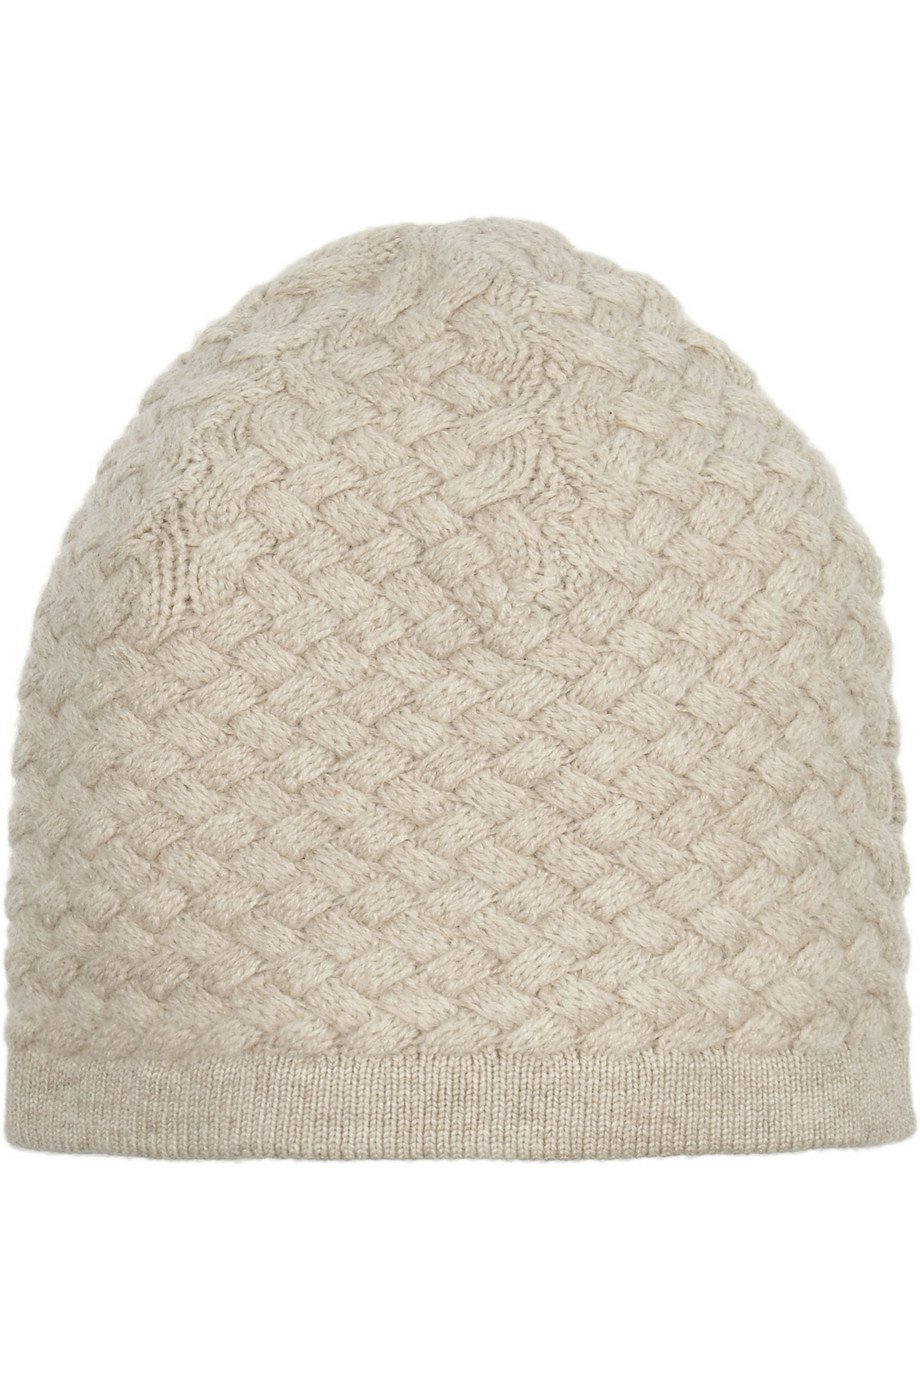 classic fitted beanie hat - Grey N.Peal fHXMkkfs6g